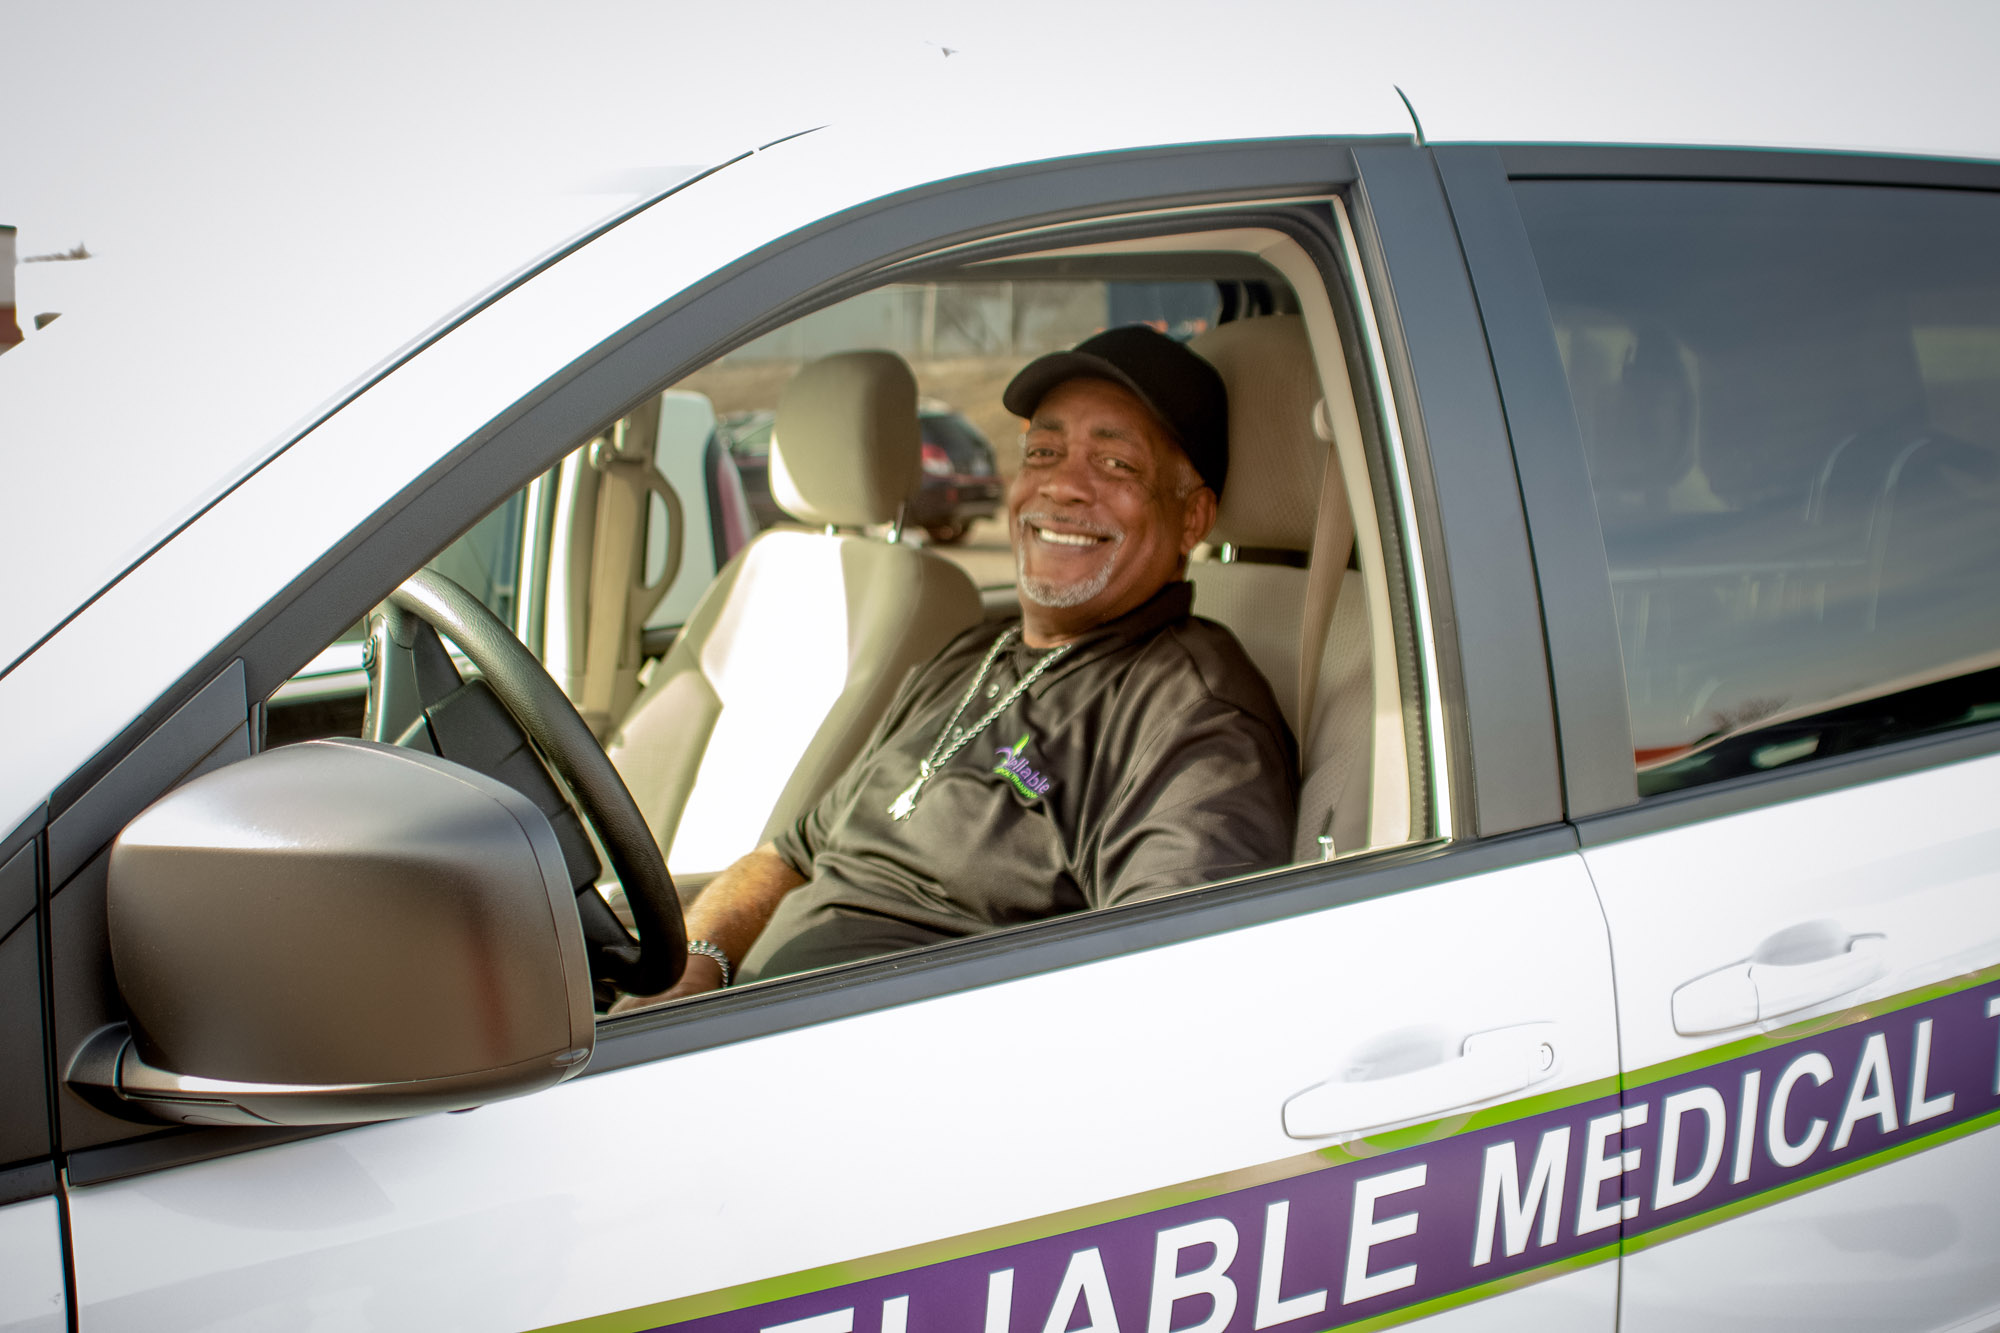 Reliable Medical Transport Driver